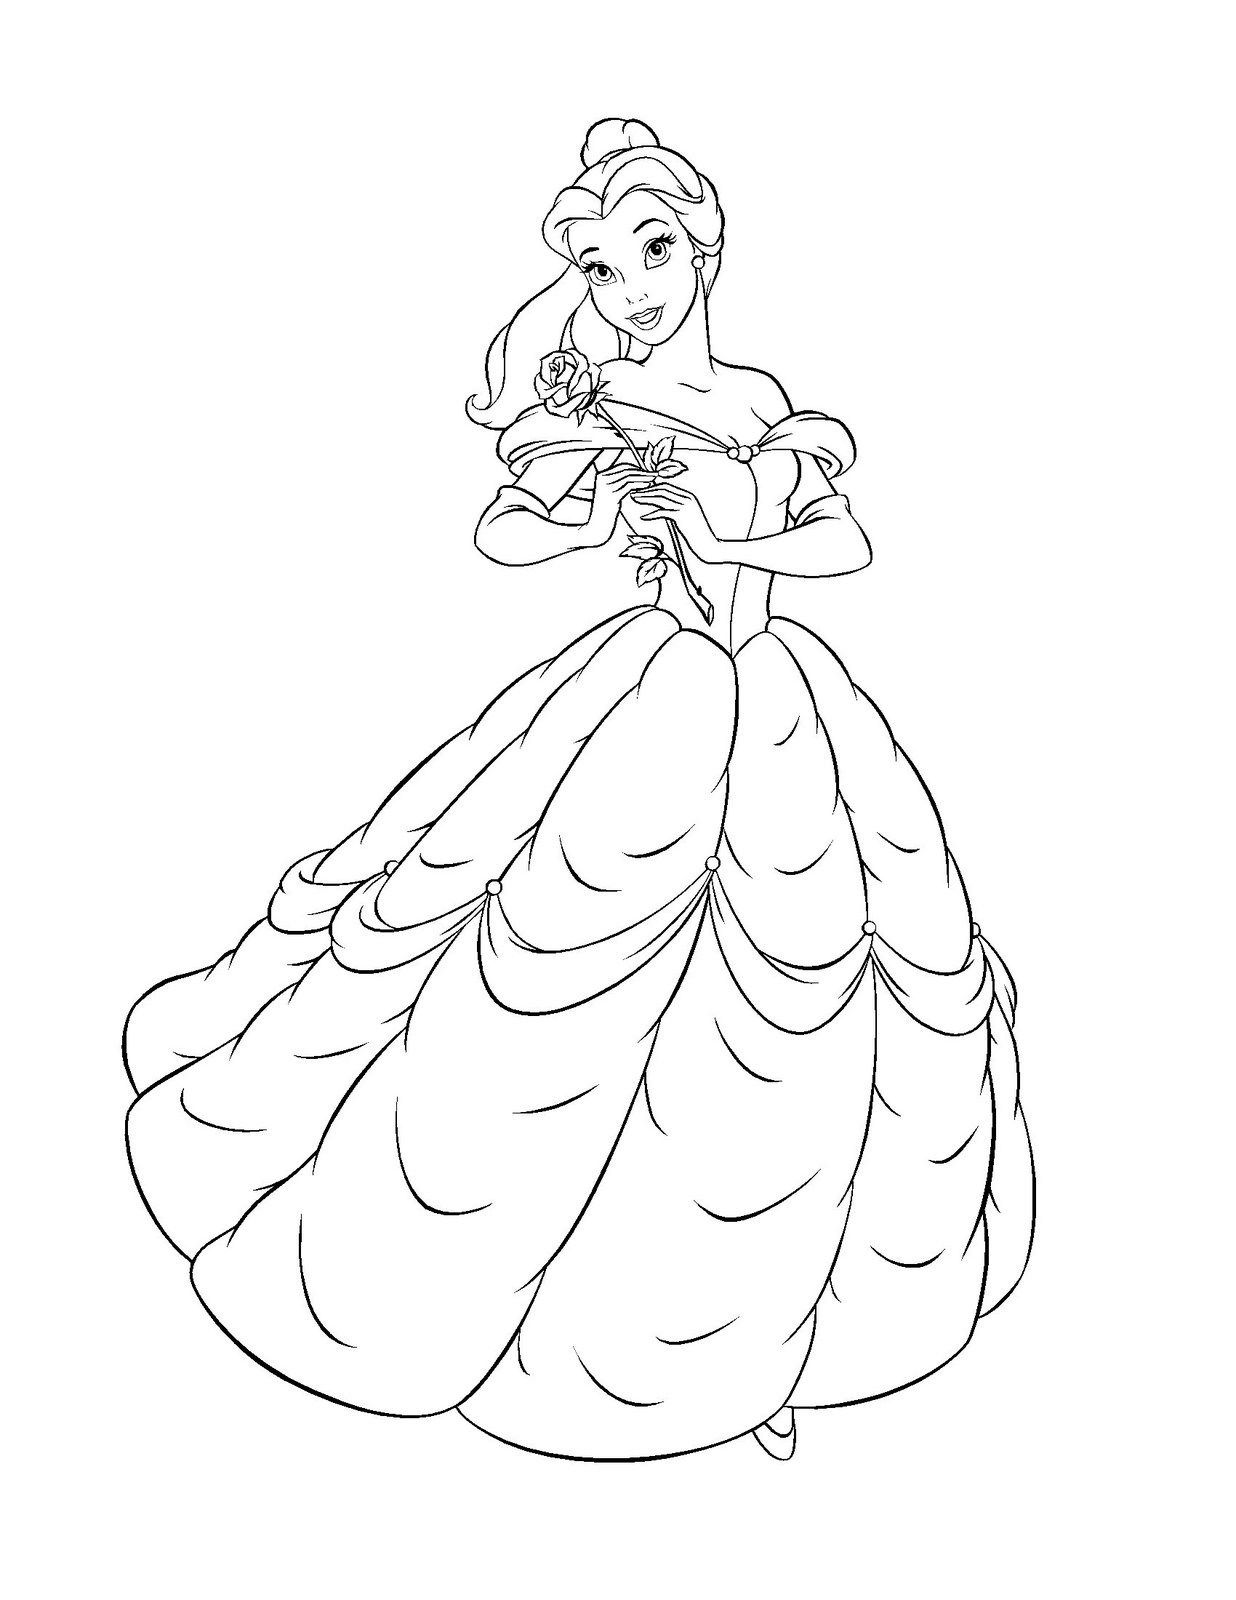 22 Great Photo Of Belle Coloring Pages Davemelillo Com Belle Coloring Pages Disney Princess Coloring Pages Disney Princess Colors